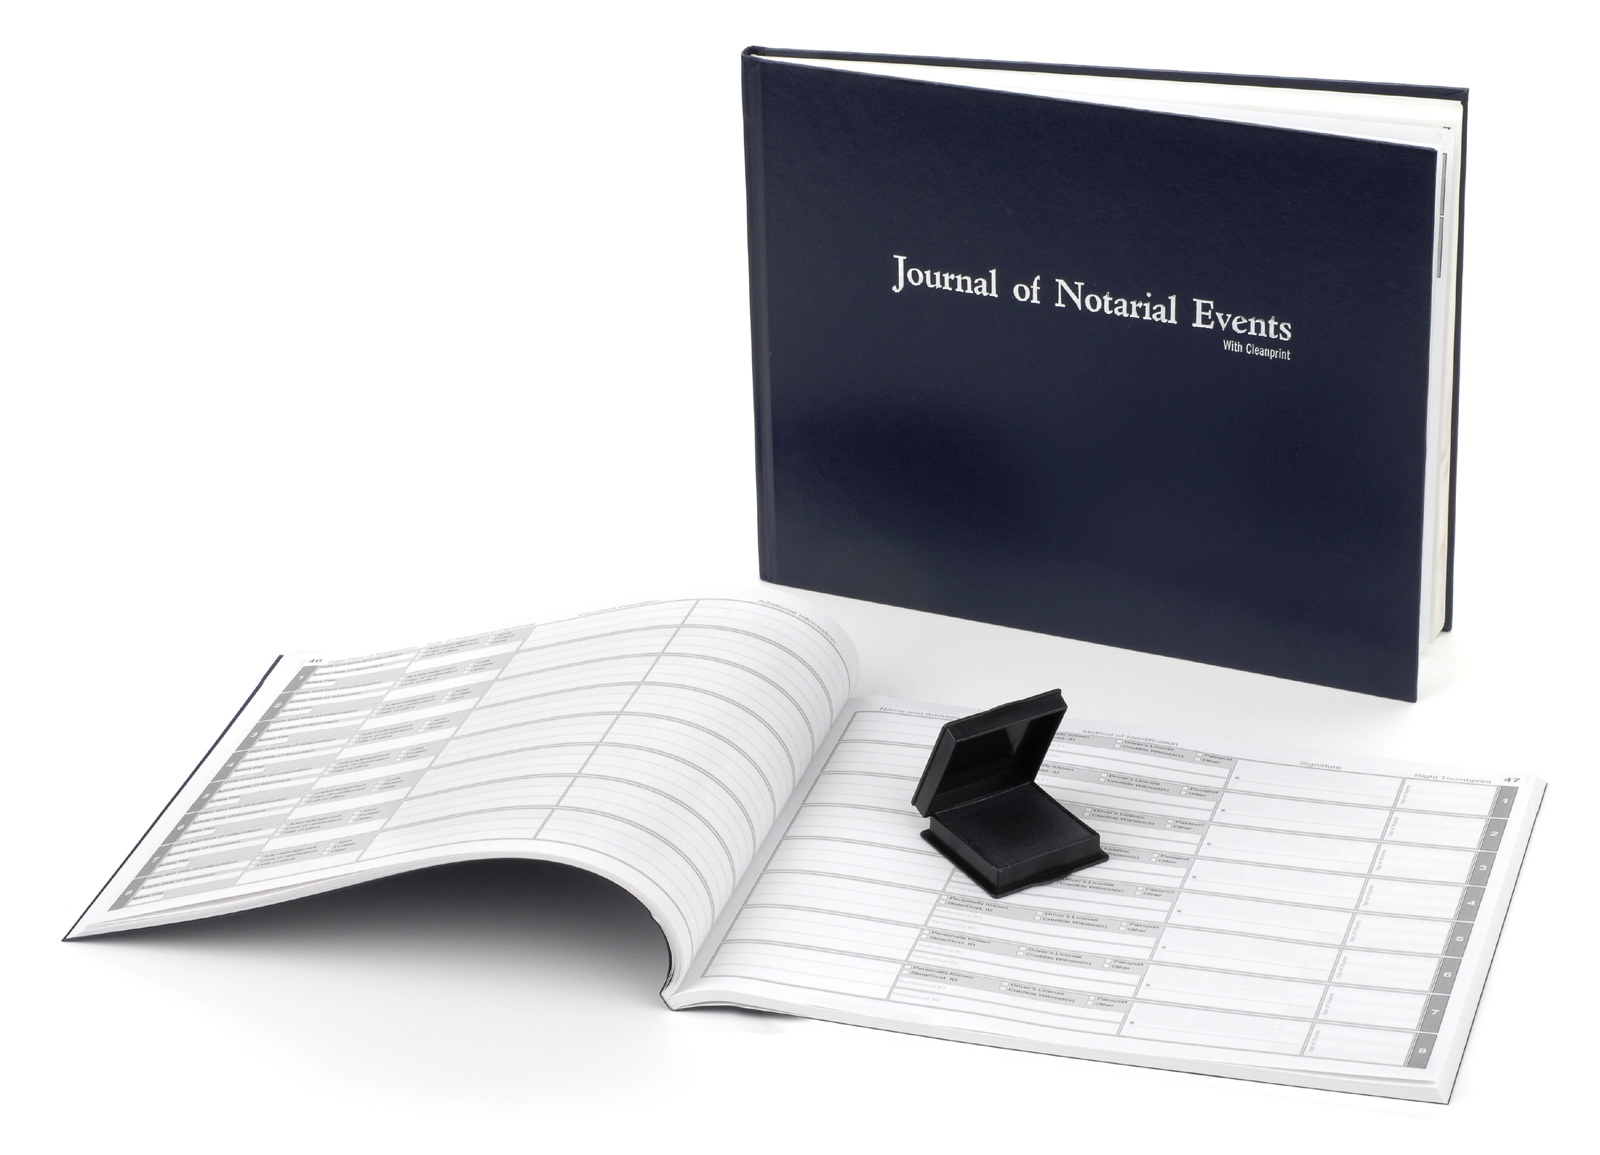 Texas Notary Hard Cover Journal with Inkless Thumbprint Pad